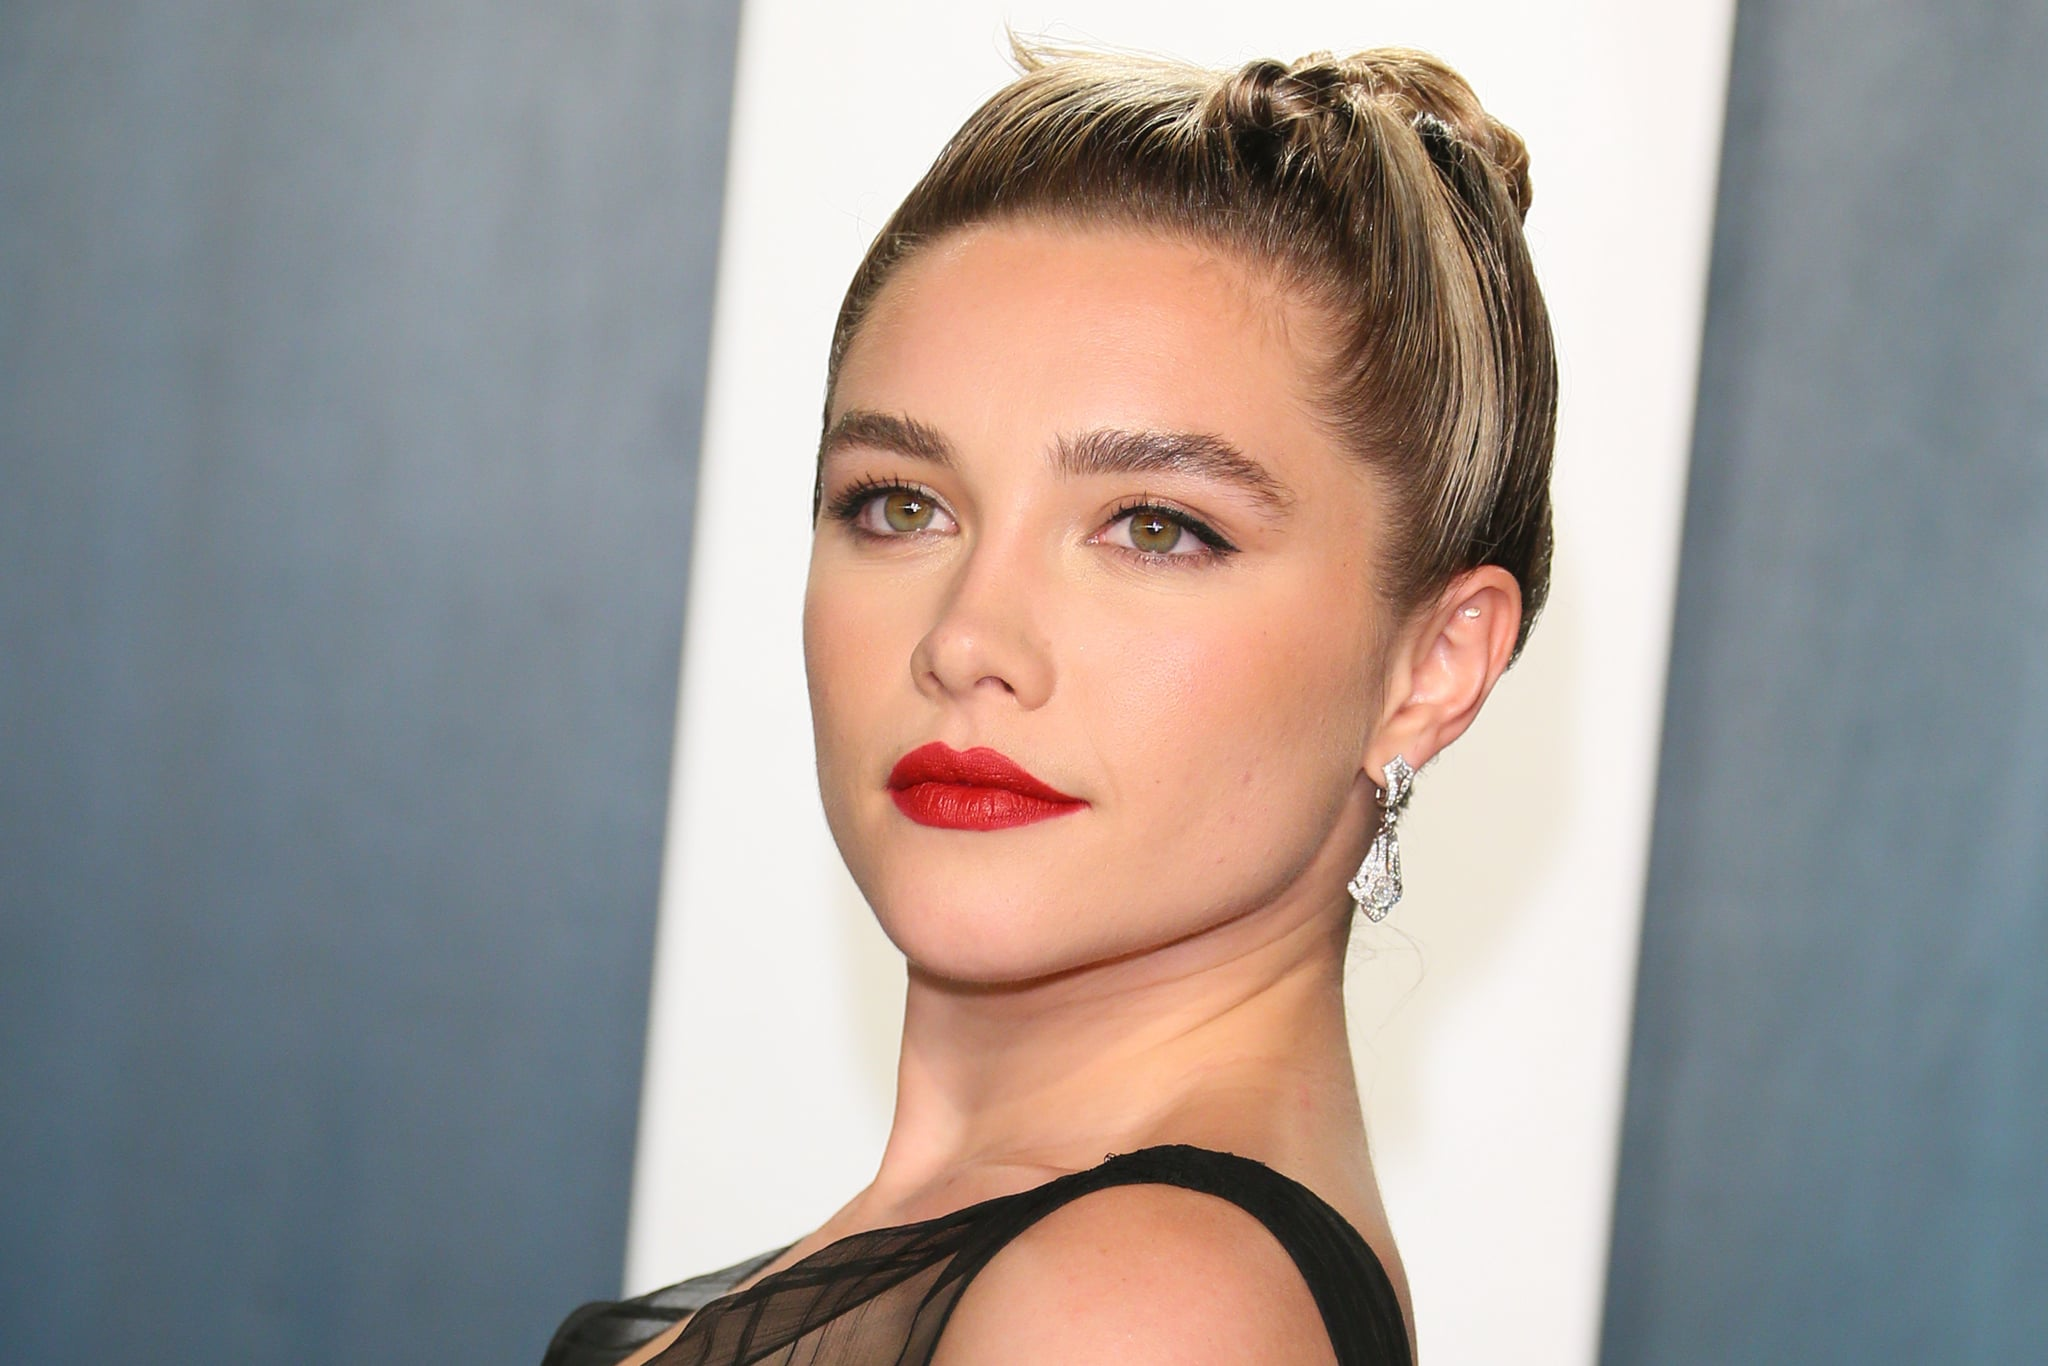 British actress Florence Pugh attends the 2020 Vanity Fair Oscar Party following the 92nd Oscars at The Wallis Annenberg Center for the Performing Arts in Beverly Hills on February 9, 2020. (Photo by Jean-Baptiste Lacroix / AFP) (Photo by JEAN-BAPTISTE LACROIX/AFP via Getty Images)